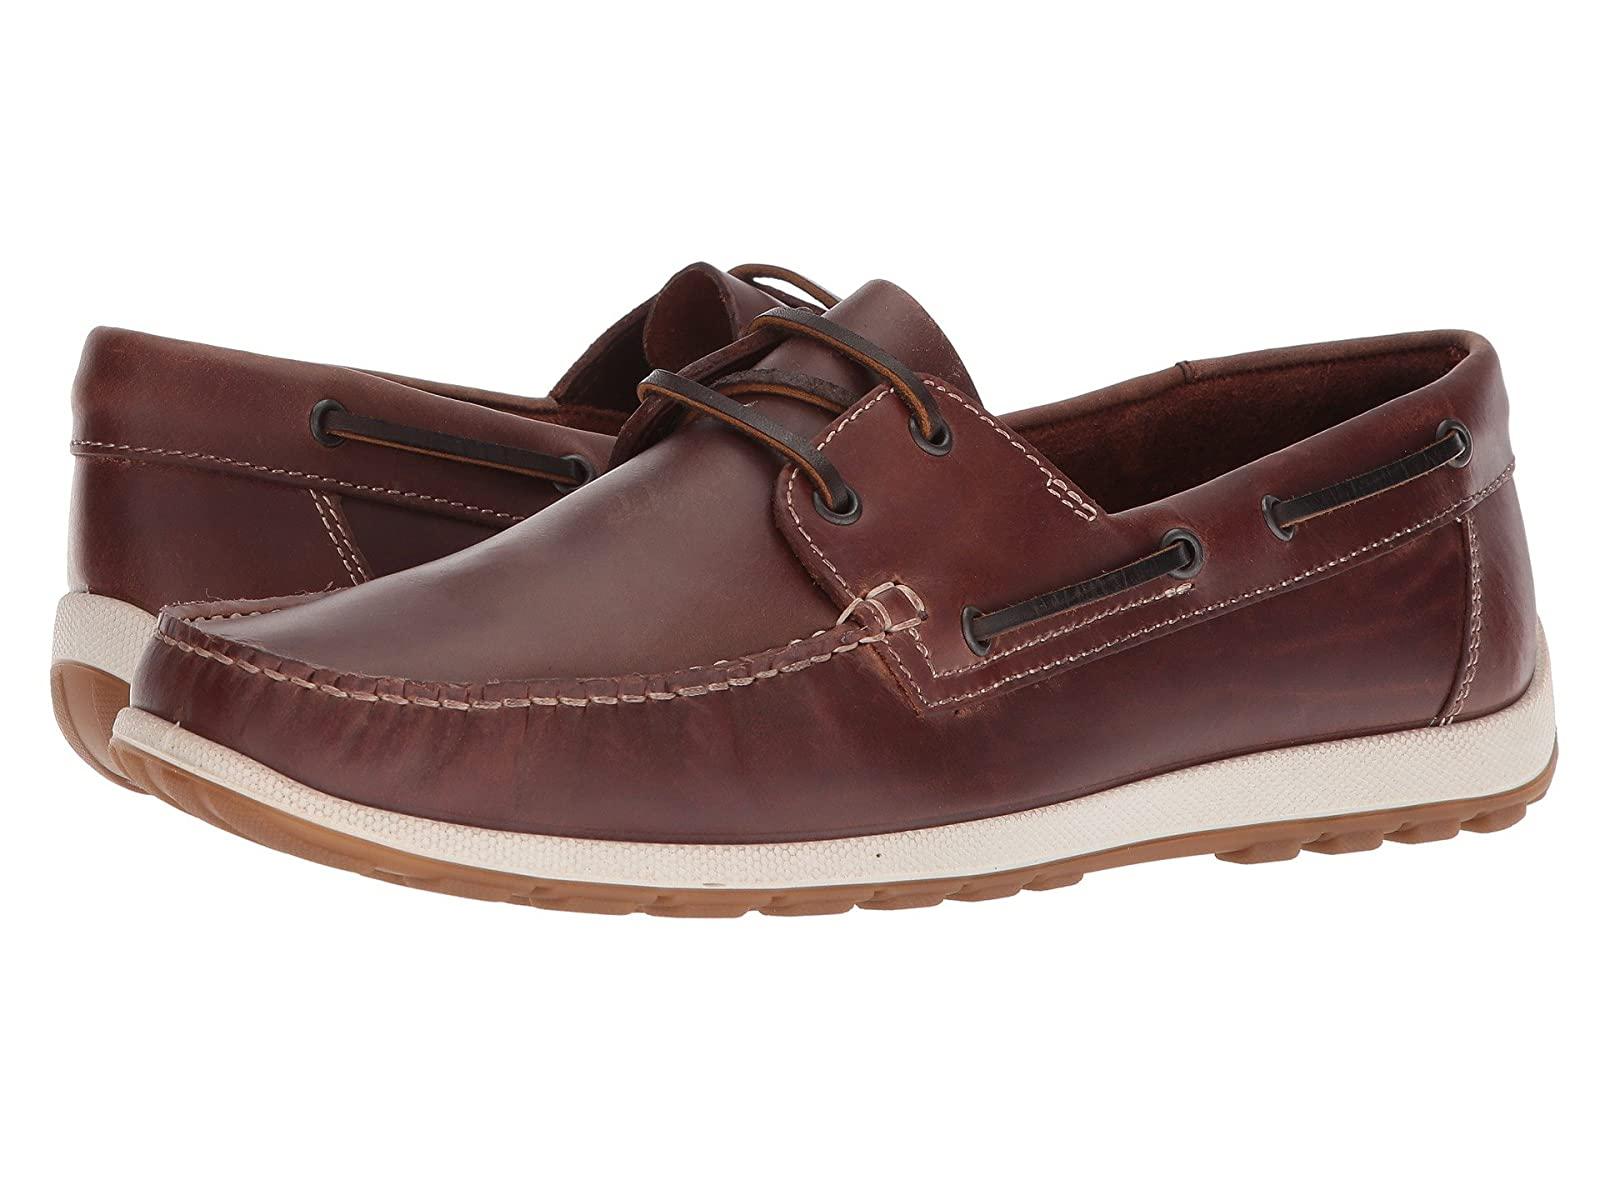 ECCO Dip Moc BoatCheap and distinctive eye-catching shoes